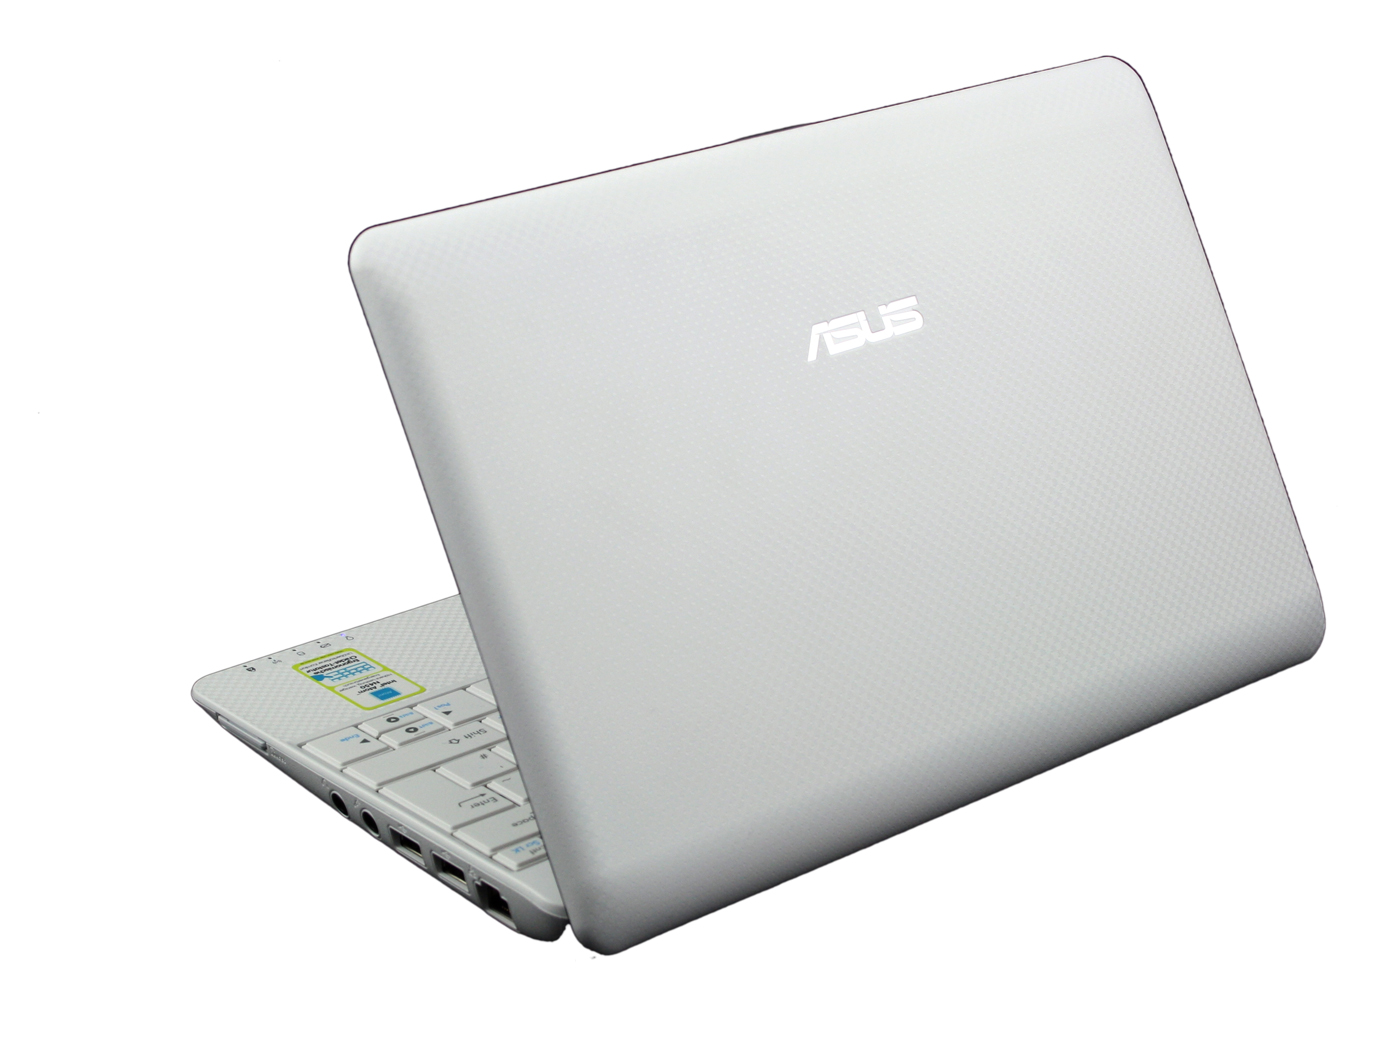 Drivers Asus Eee PC 1001P Notebook